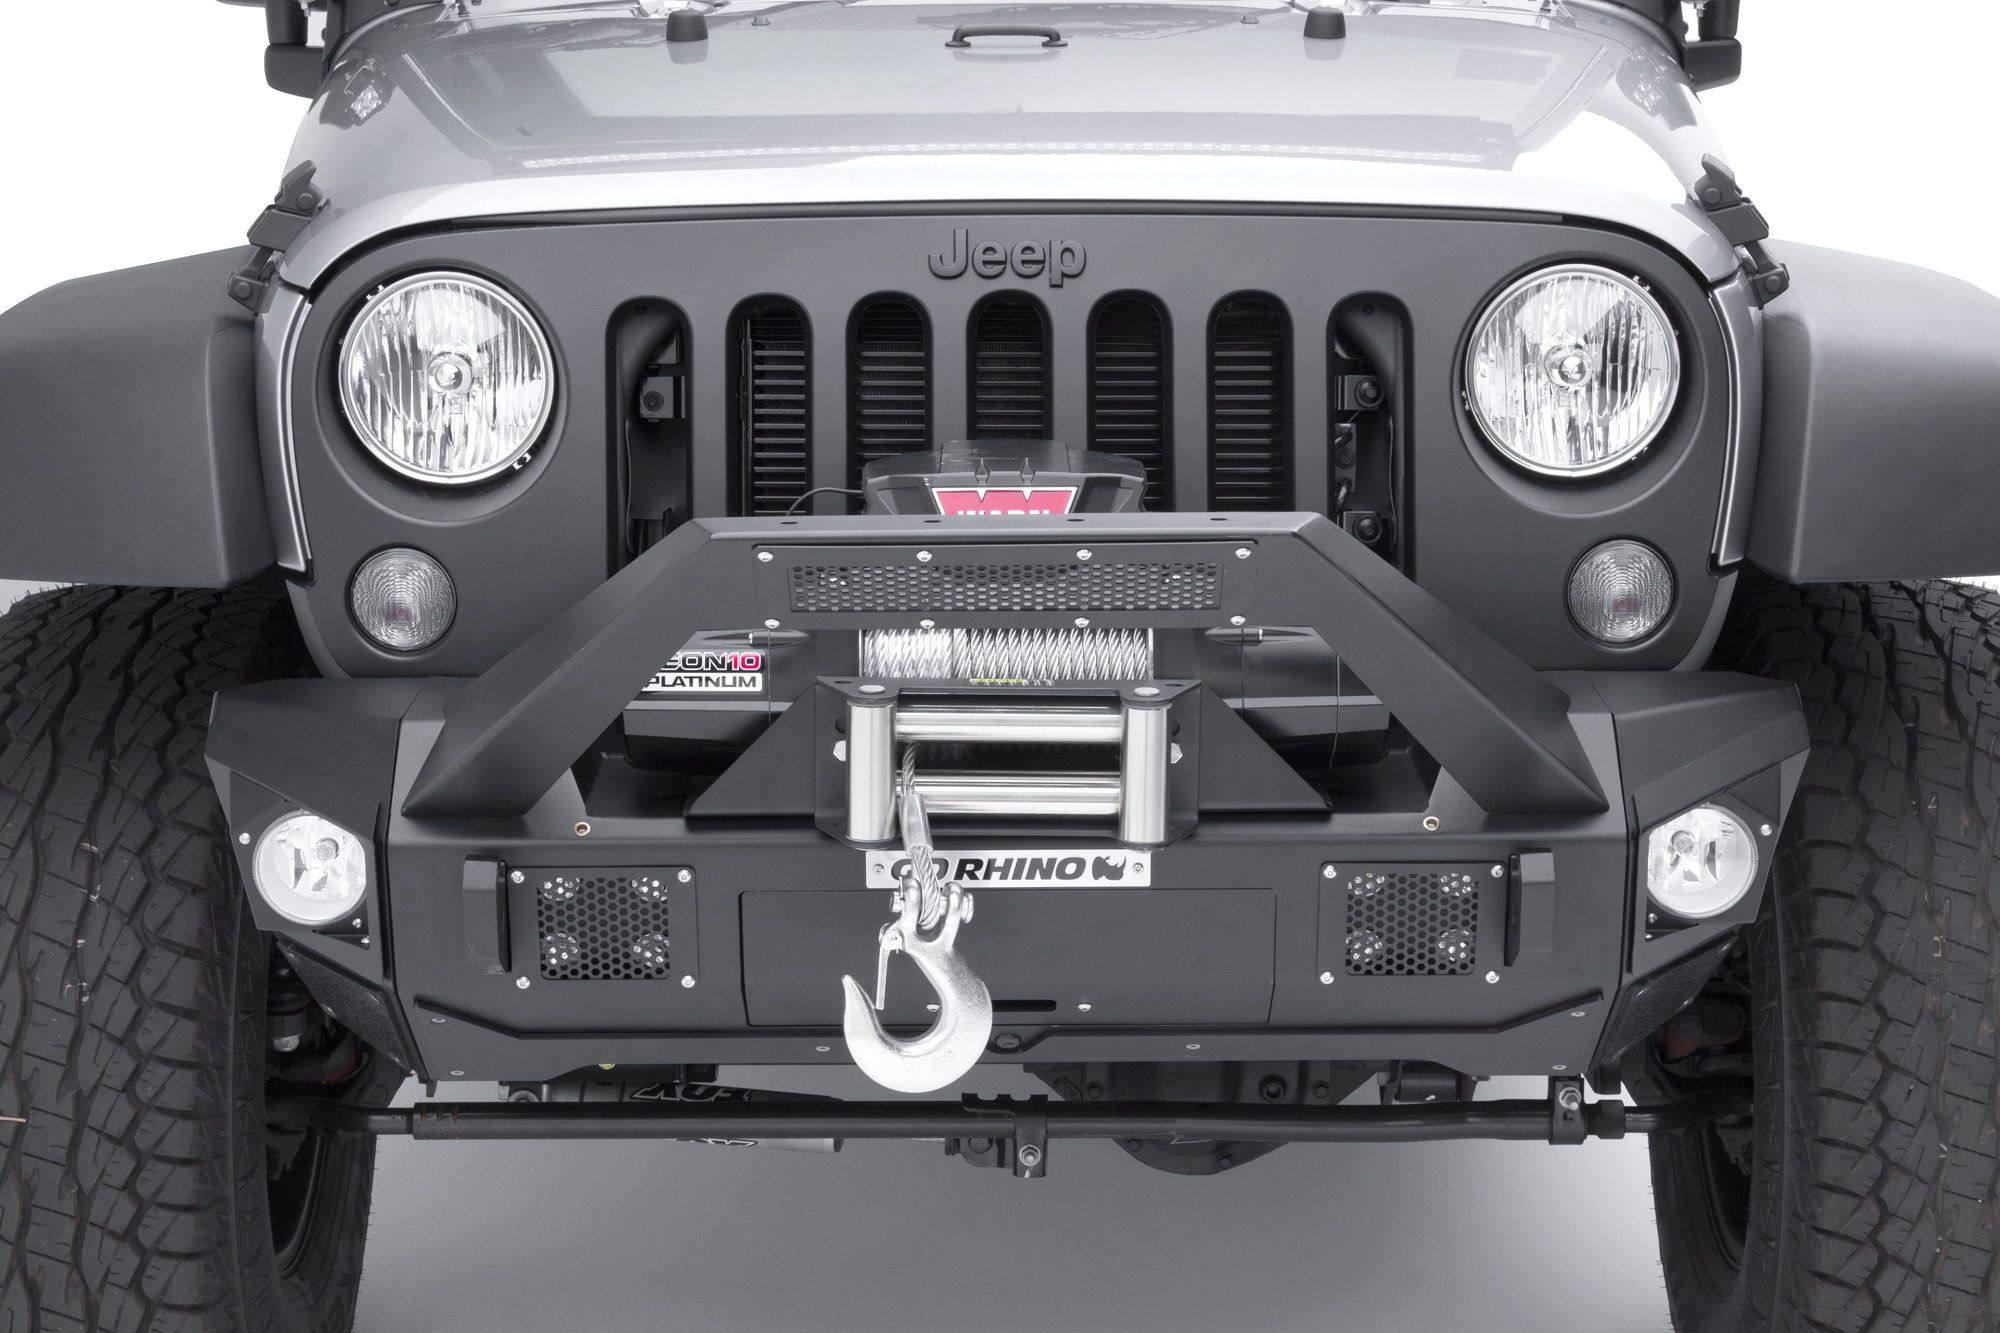 The Go Rhino Brj40 Front Bumper Is The Ultimate Modular Bumper For The Jeep Wrangler Jk Completing The Brj40 Front Bumper Is A Jeep Wrangler Jeep Lifted Jeep